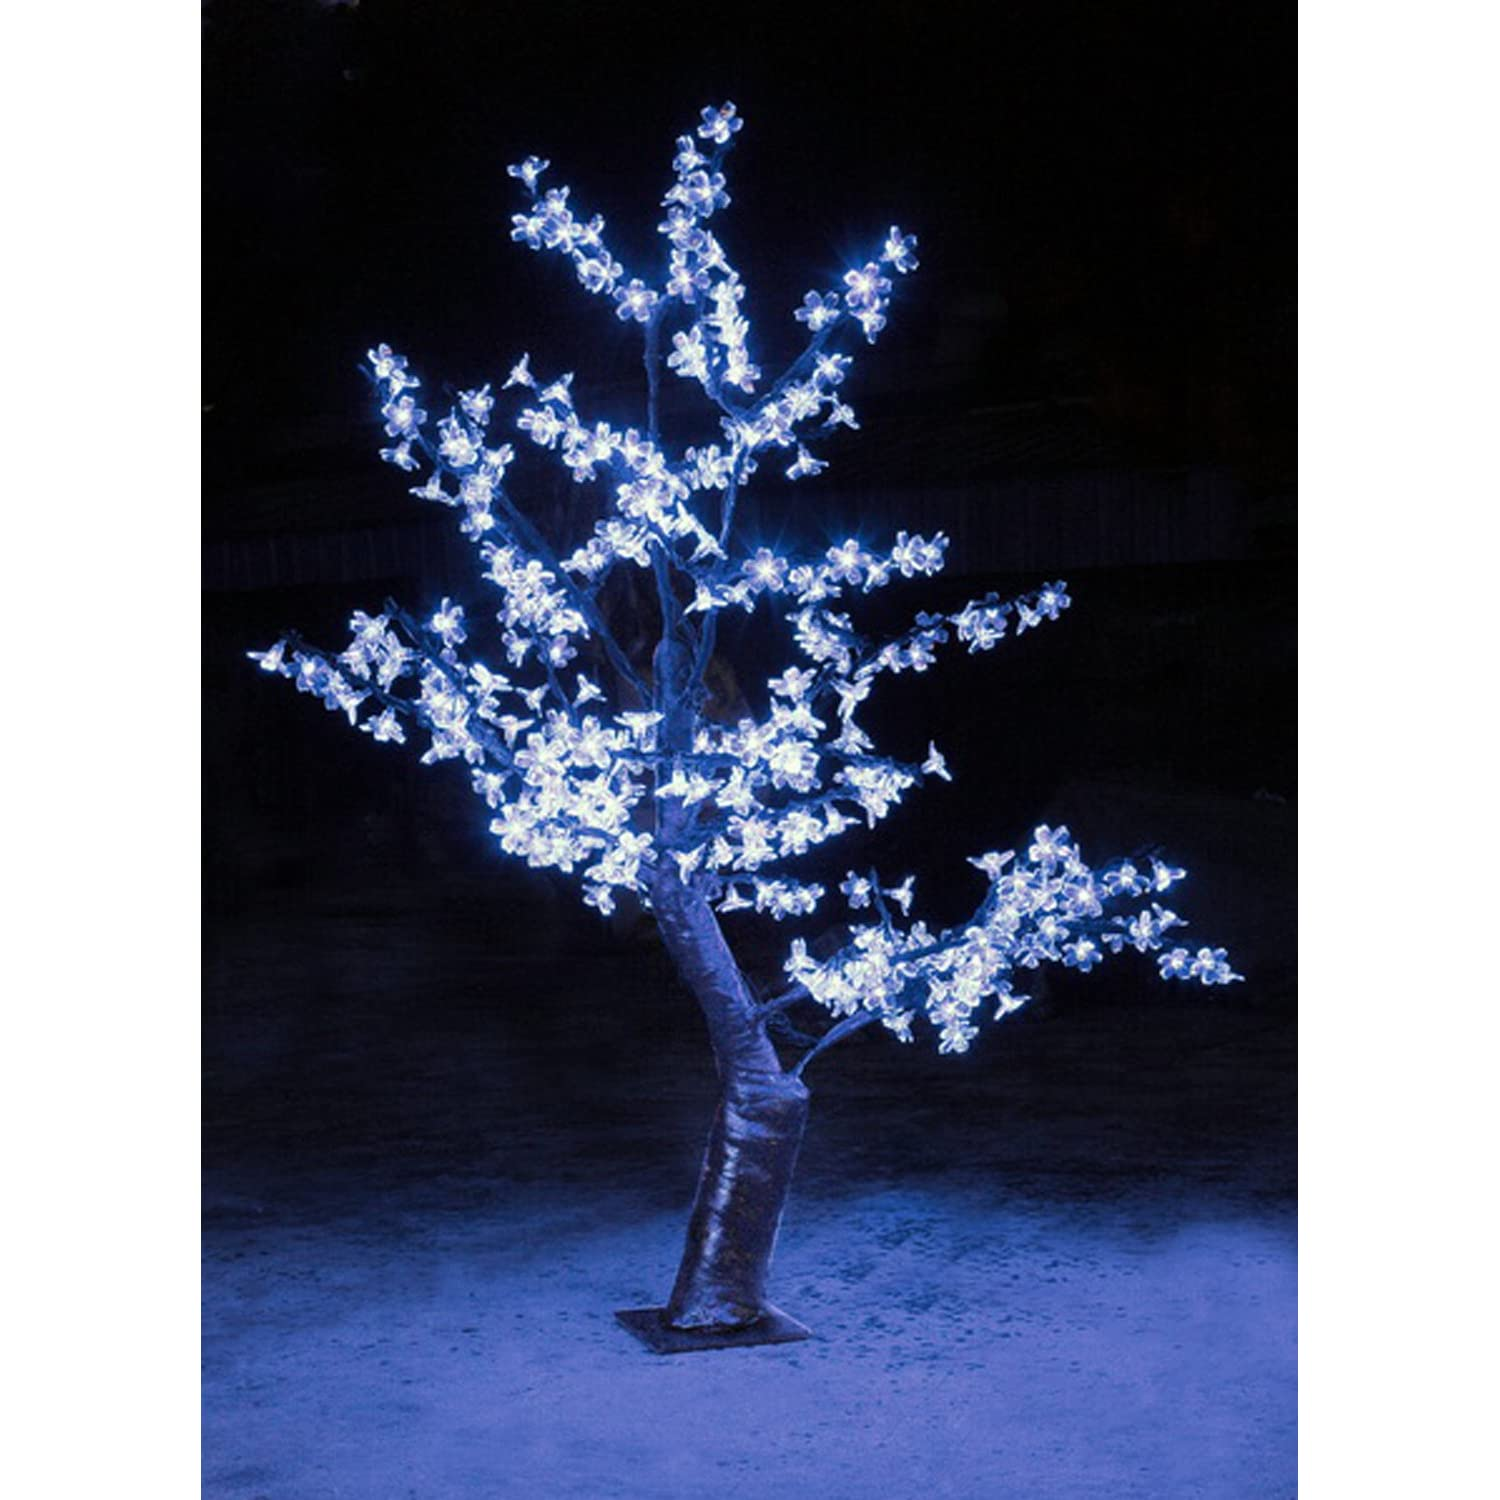 48-Inch high LED Indoor/ outdoor Lighted Tree